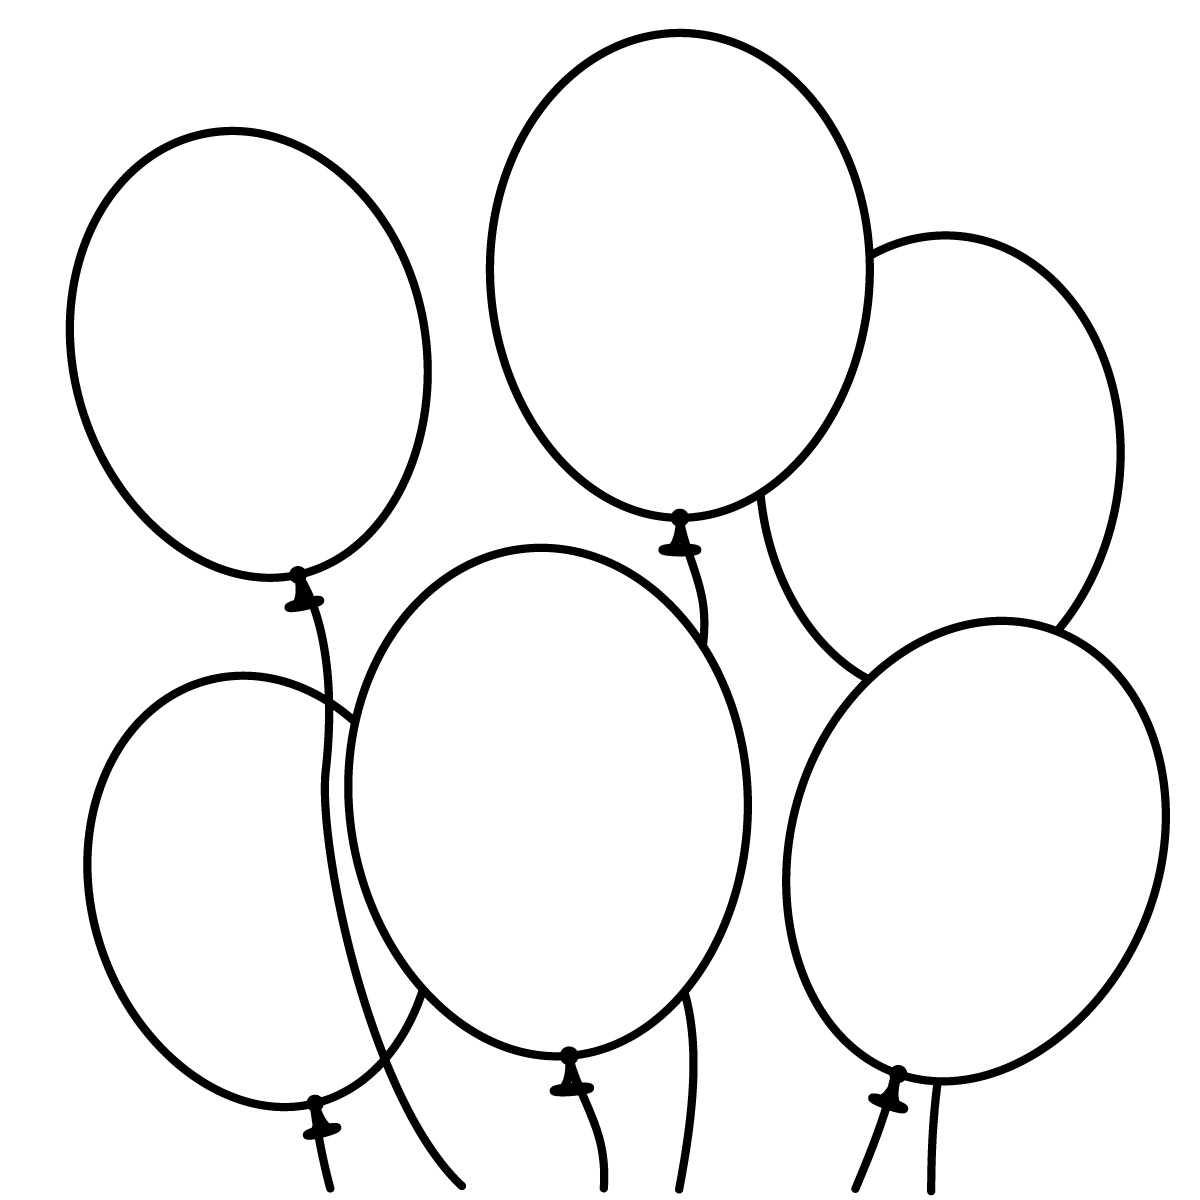 Free coloring pages kite - Kite 20clipart 20black 20and 20white